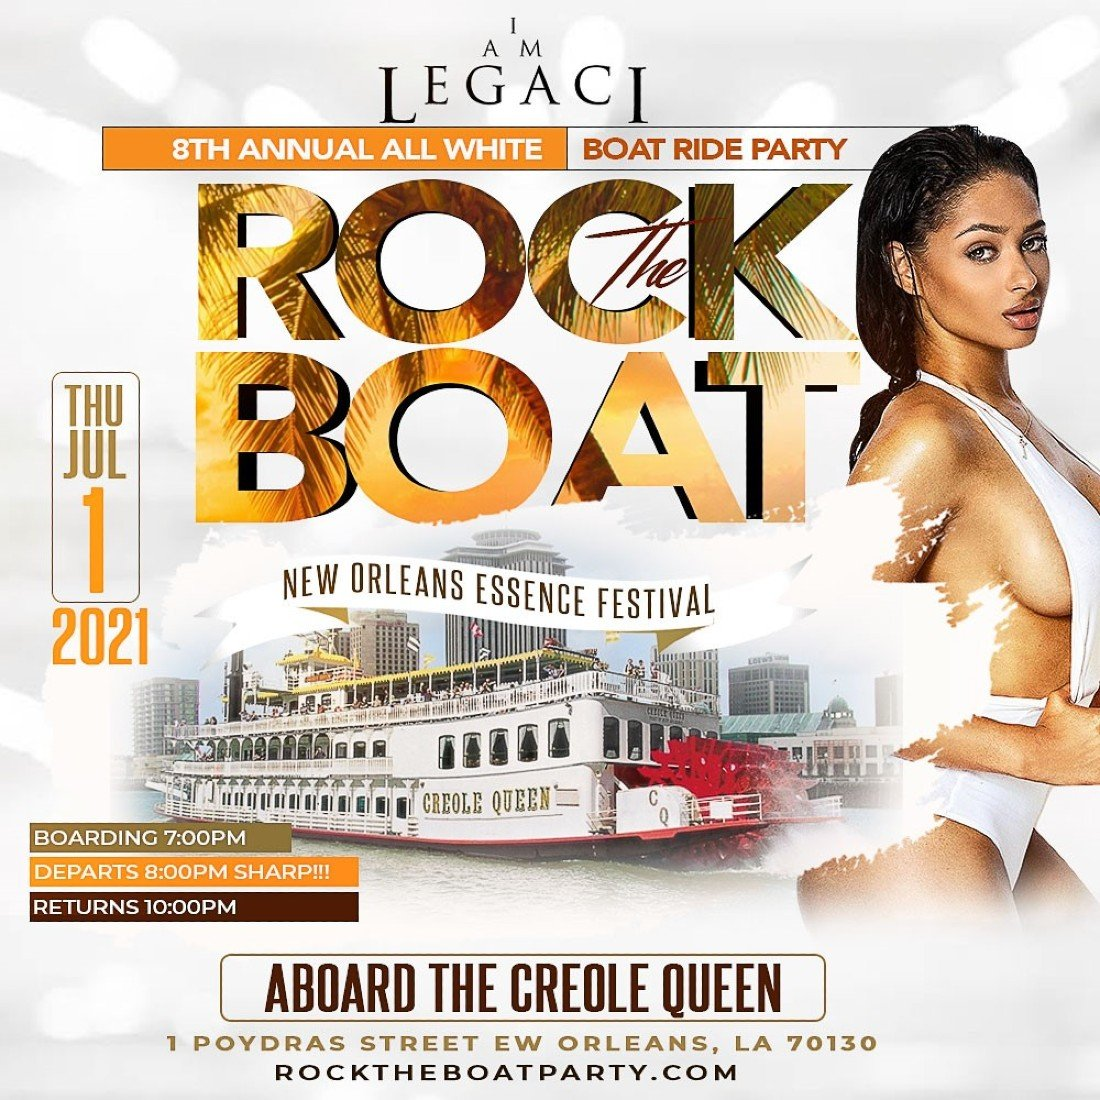 ROCK THE BOAT 2021 THE 8th ANNUAL ALL WHITE BOAT RIDE PARTY DURING NEW ORLEANS ESSENCE MUSIC FEST, 1 July